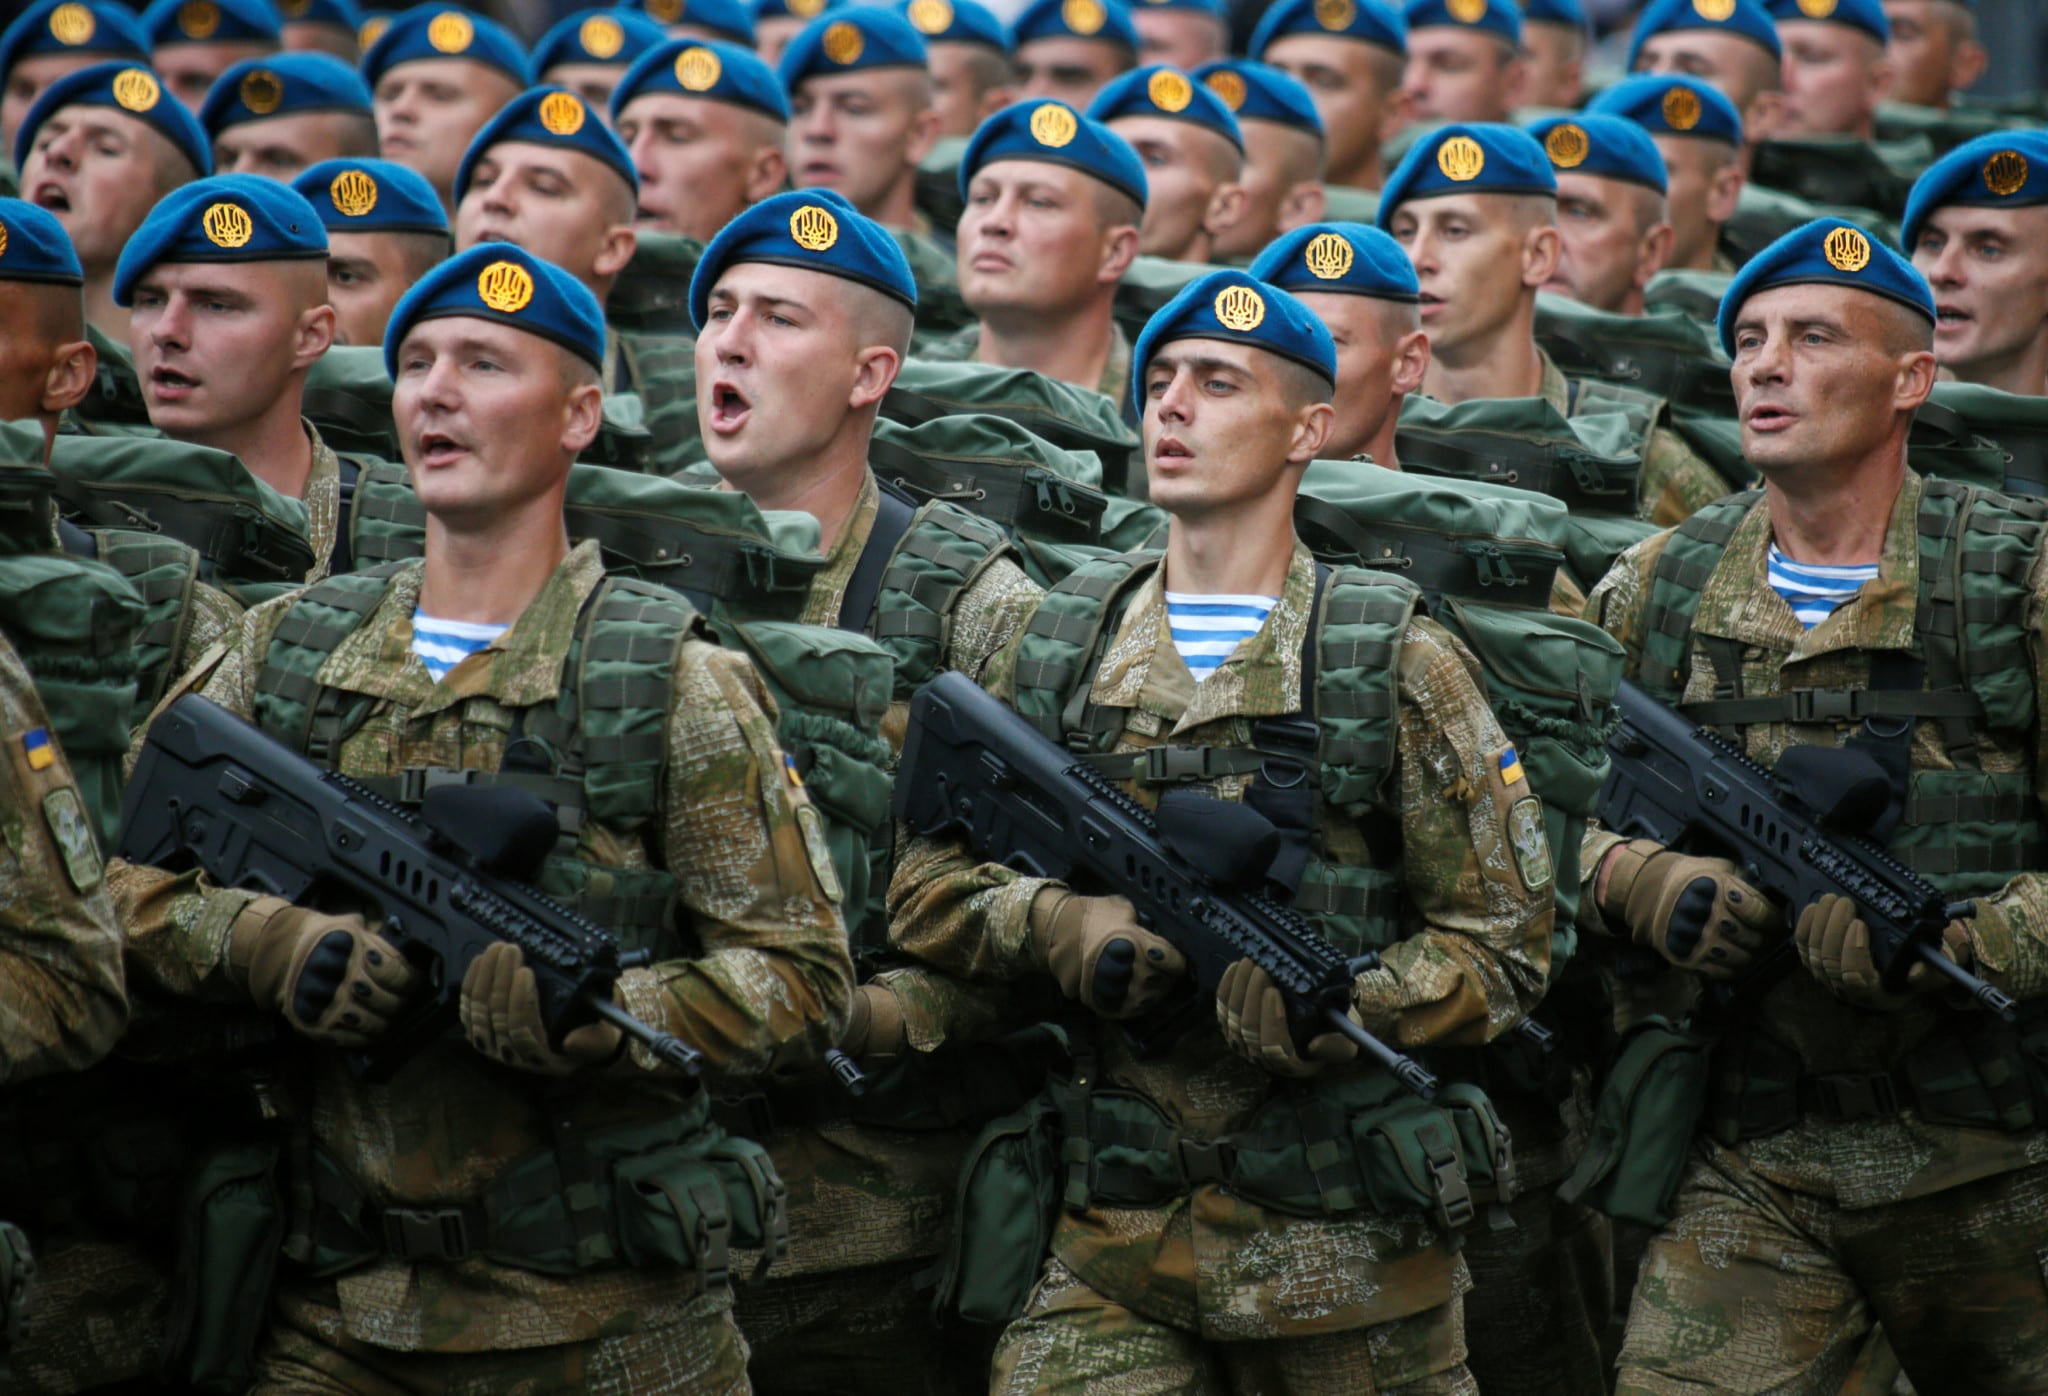 Image [Servicemen march during Ukraine's Independence Day military parade in central Kiev (Photo: Valentyn Ogirenko / Reuters]